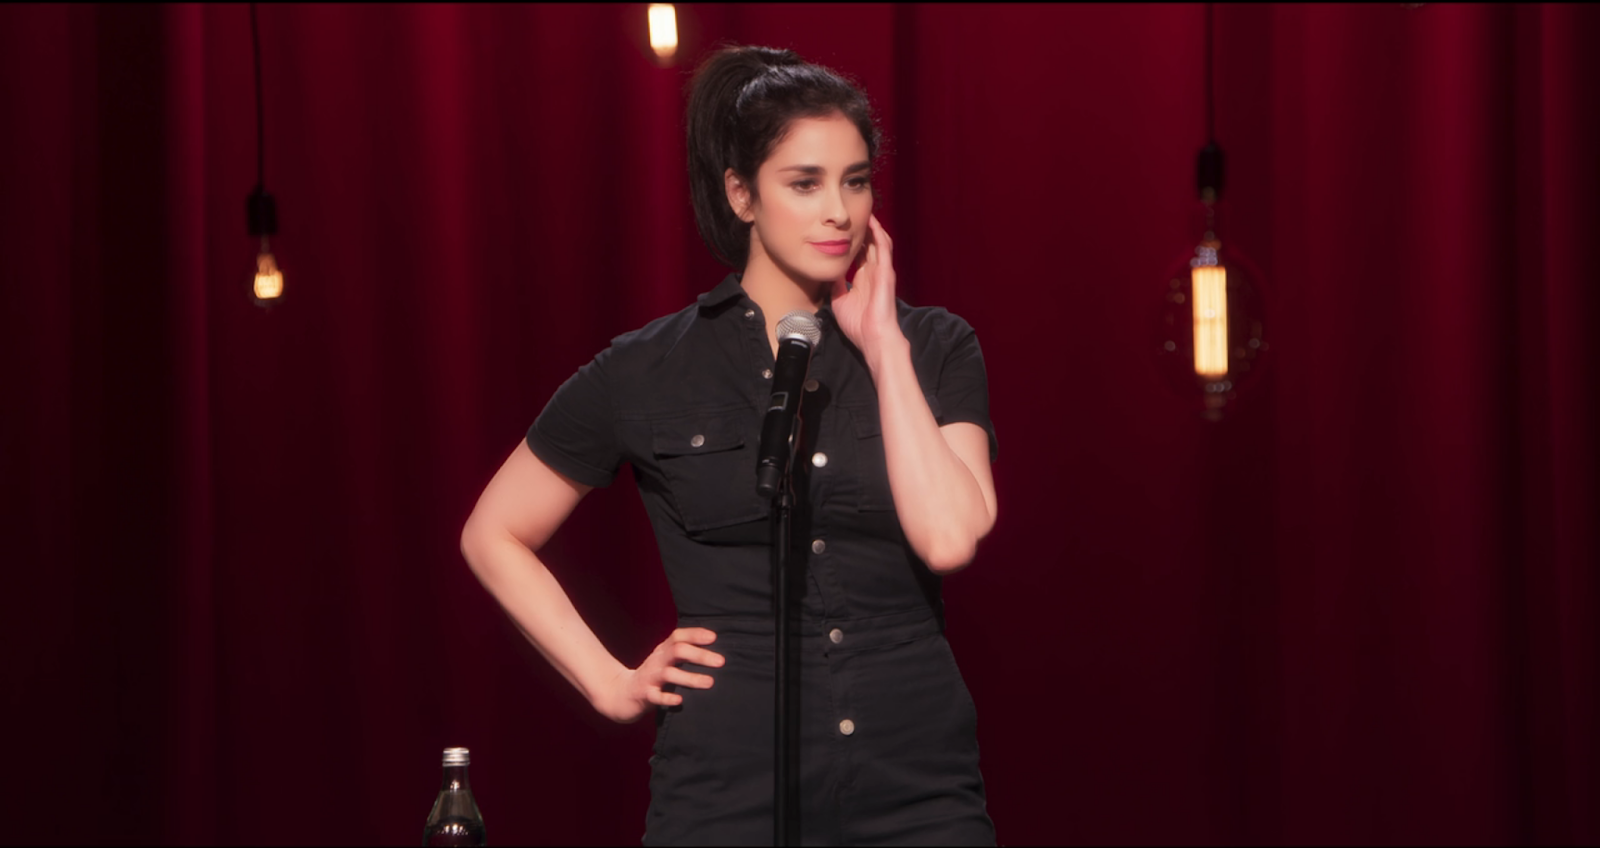 AoM: Movies et al.: Sarah Silverman: A Speck of Dust (2017)